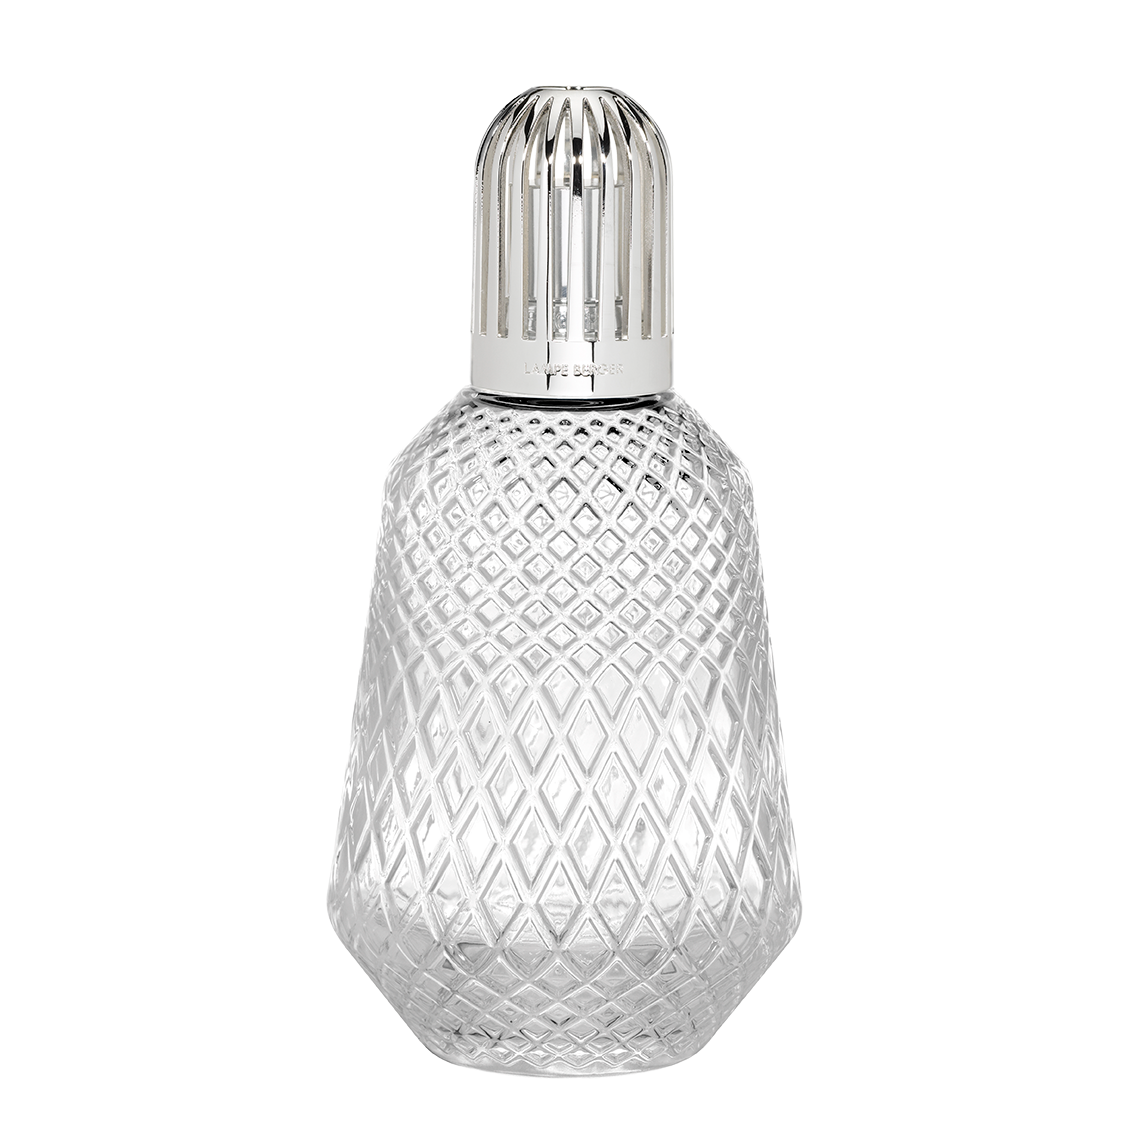 Matali Crasset Crystal Clear Lampe Gift Set by Maison Berger